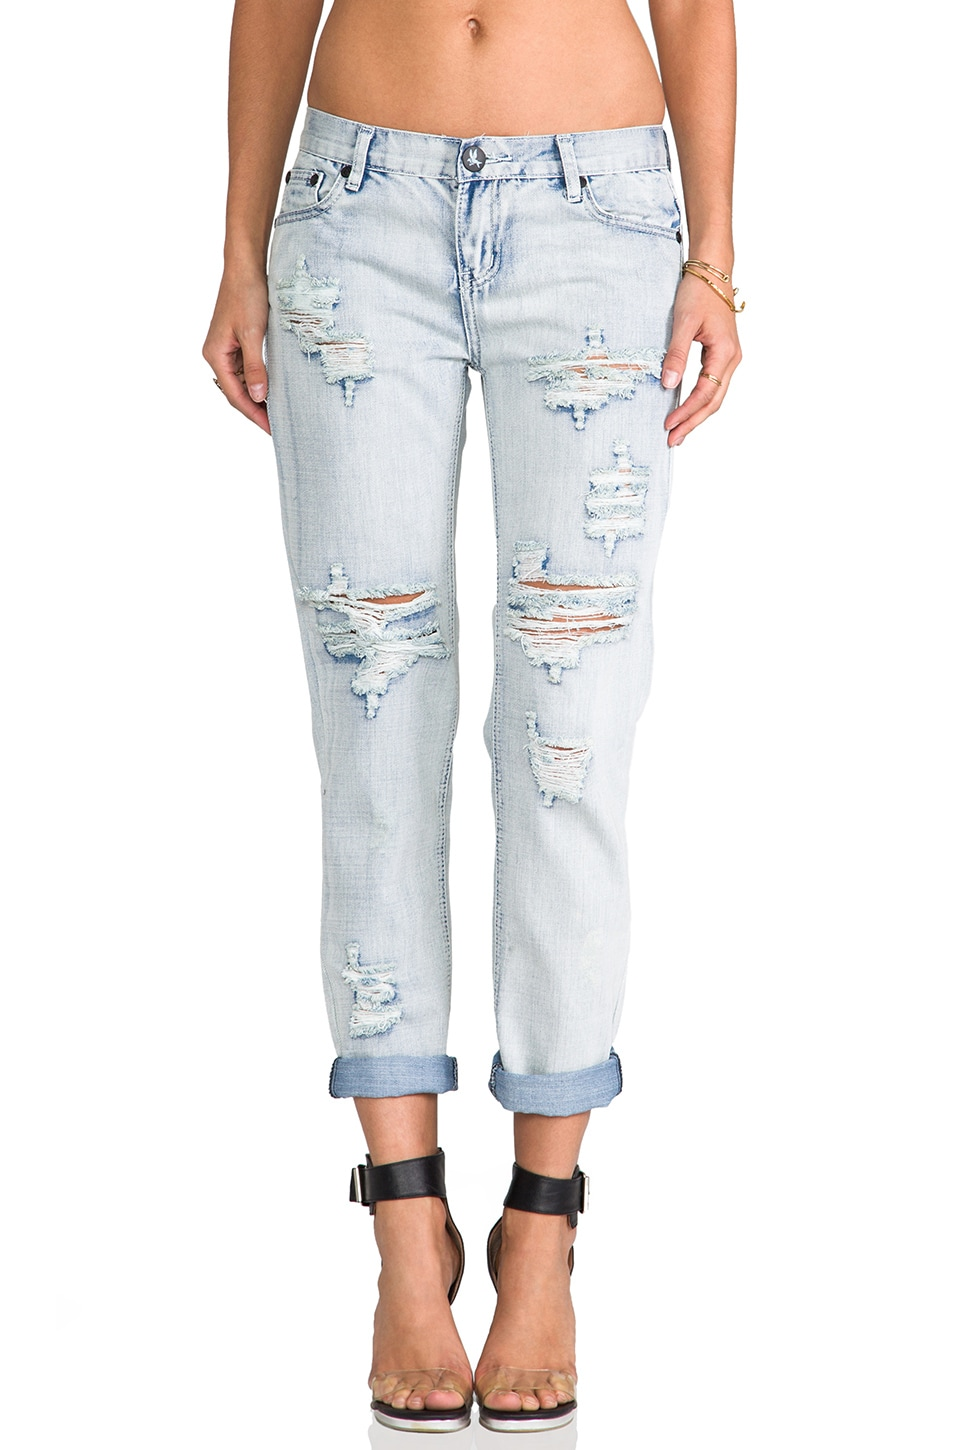 One Teaspoon Jeans Sizing One Teaspoon